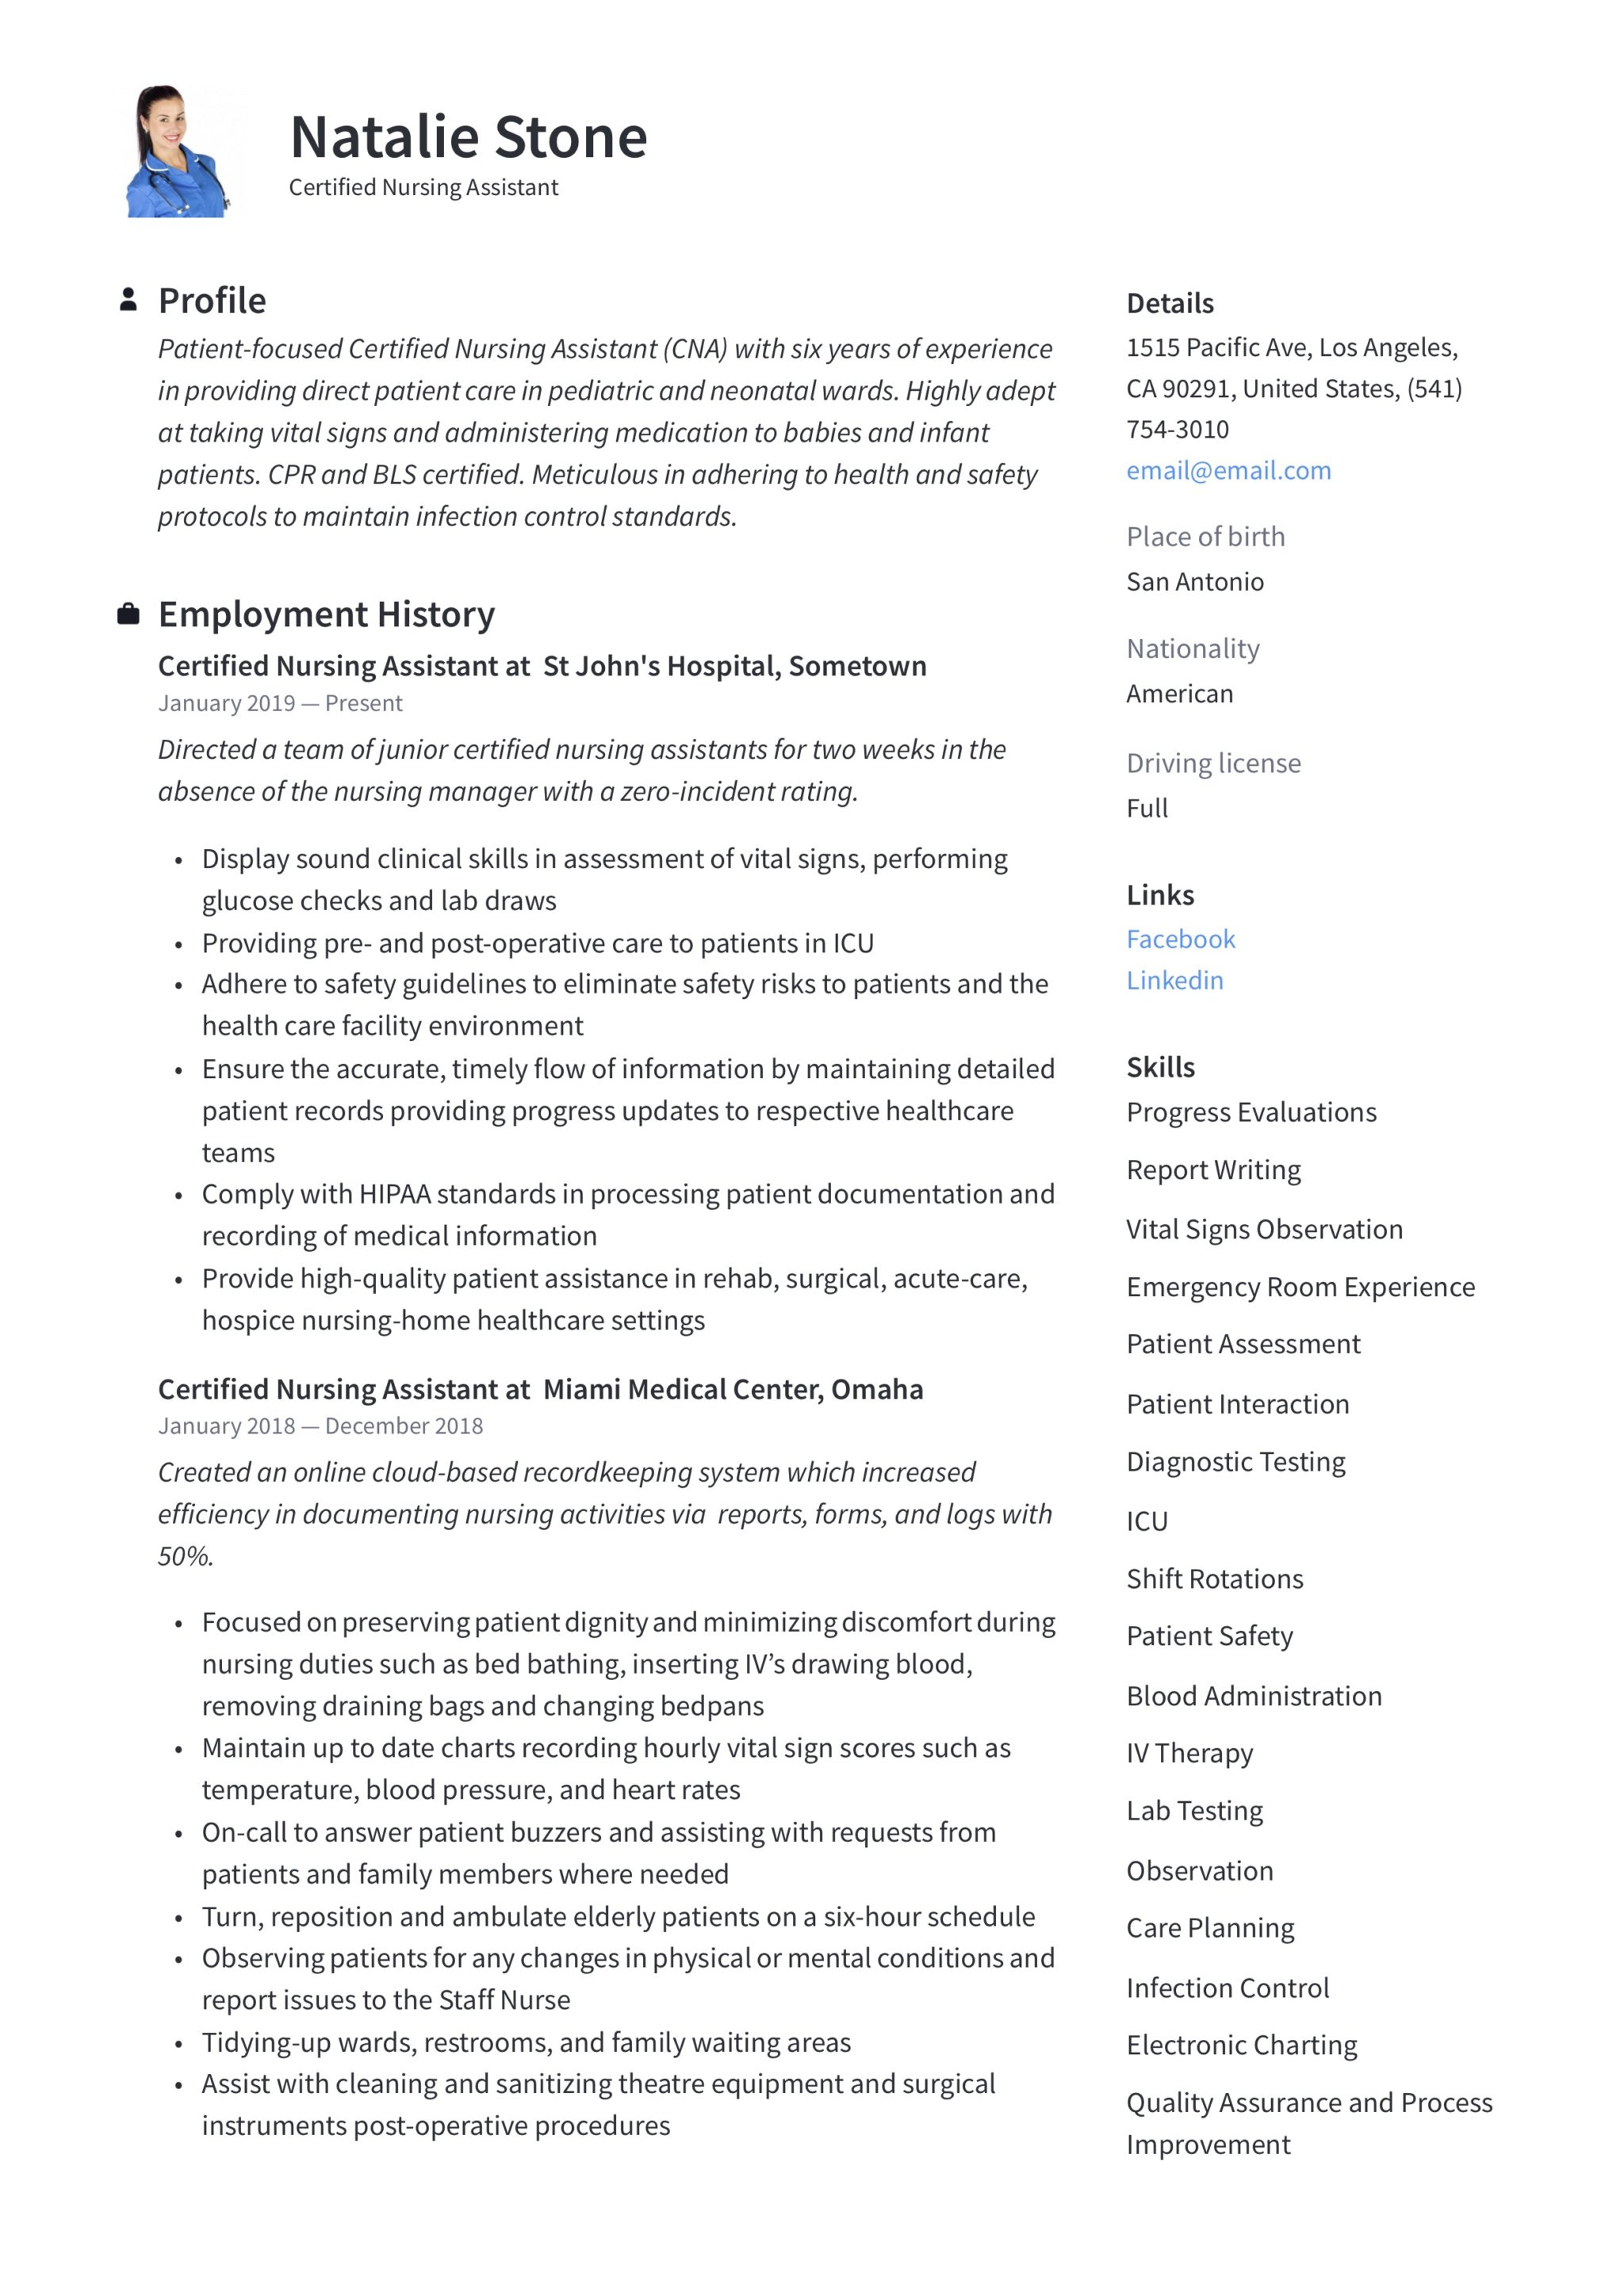 Certified Nursing Assistant Resume Writing Guide 12 Templates